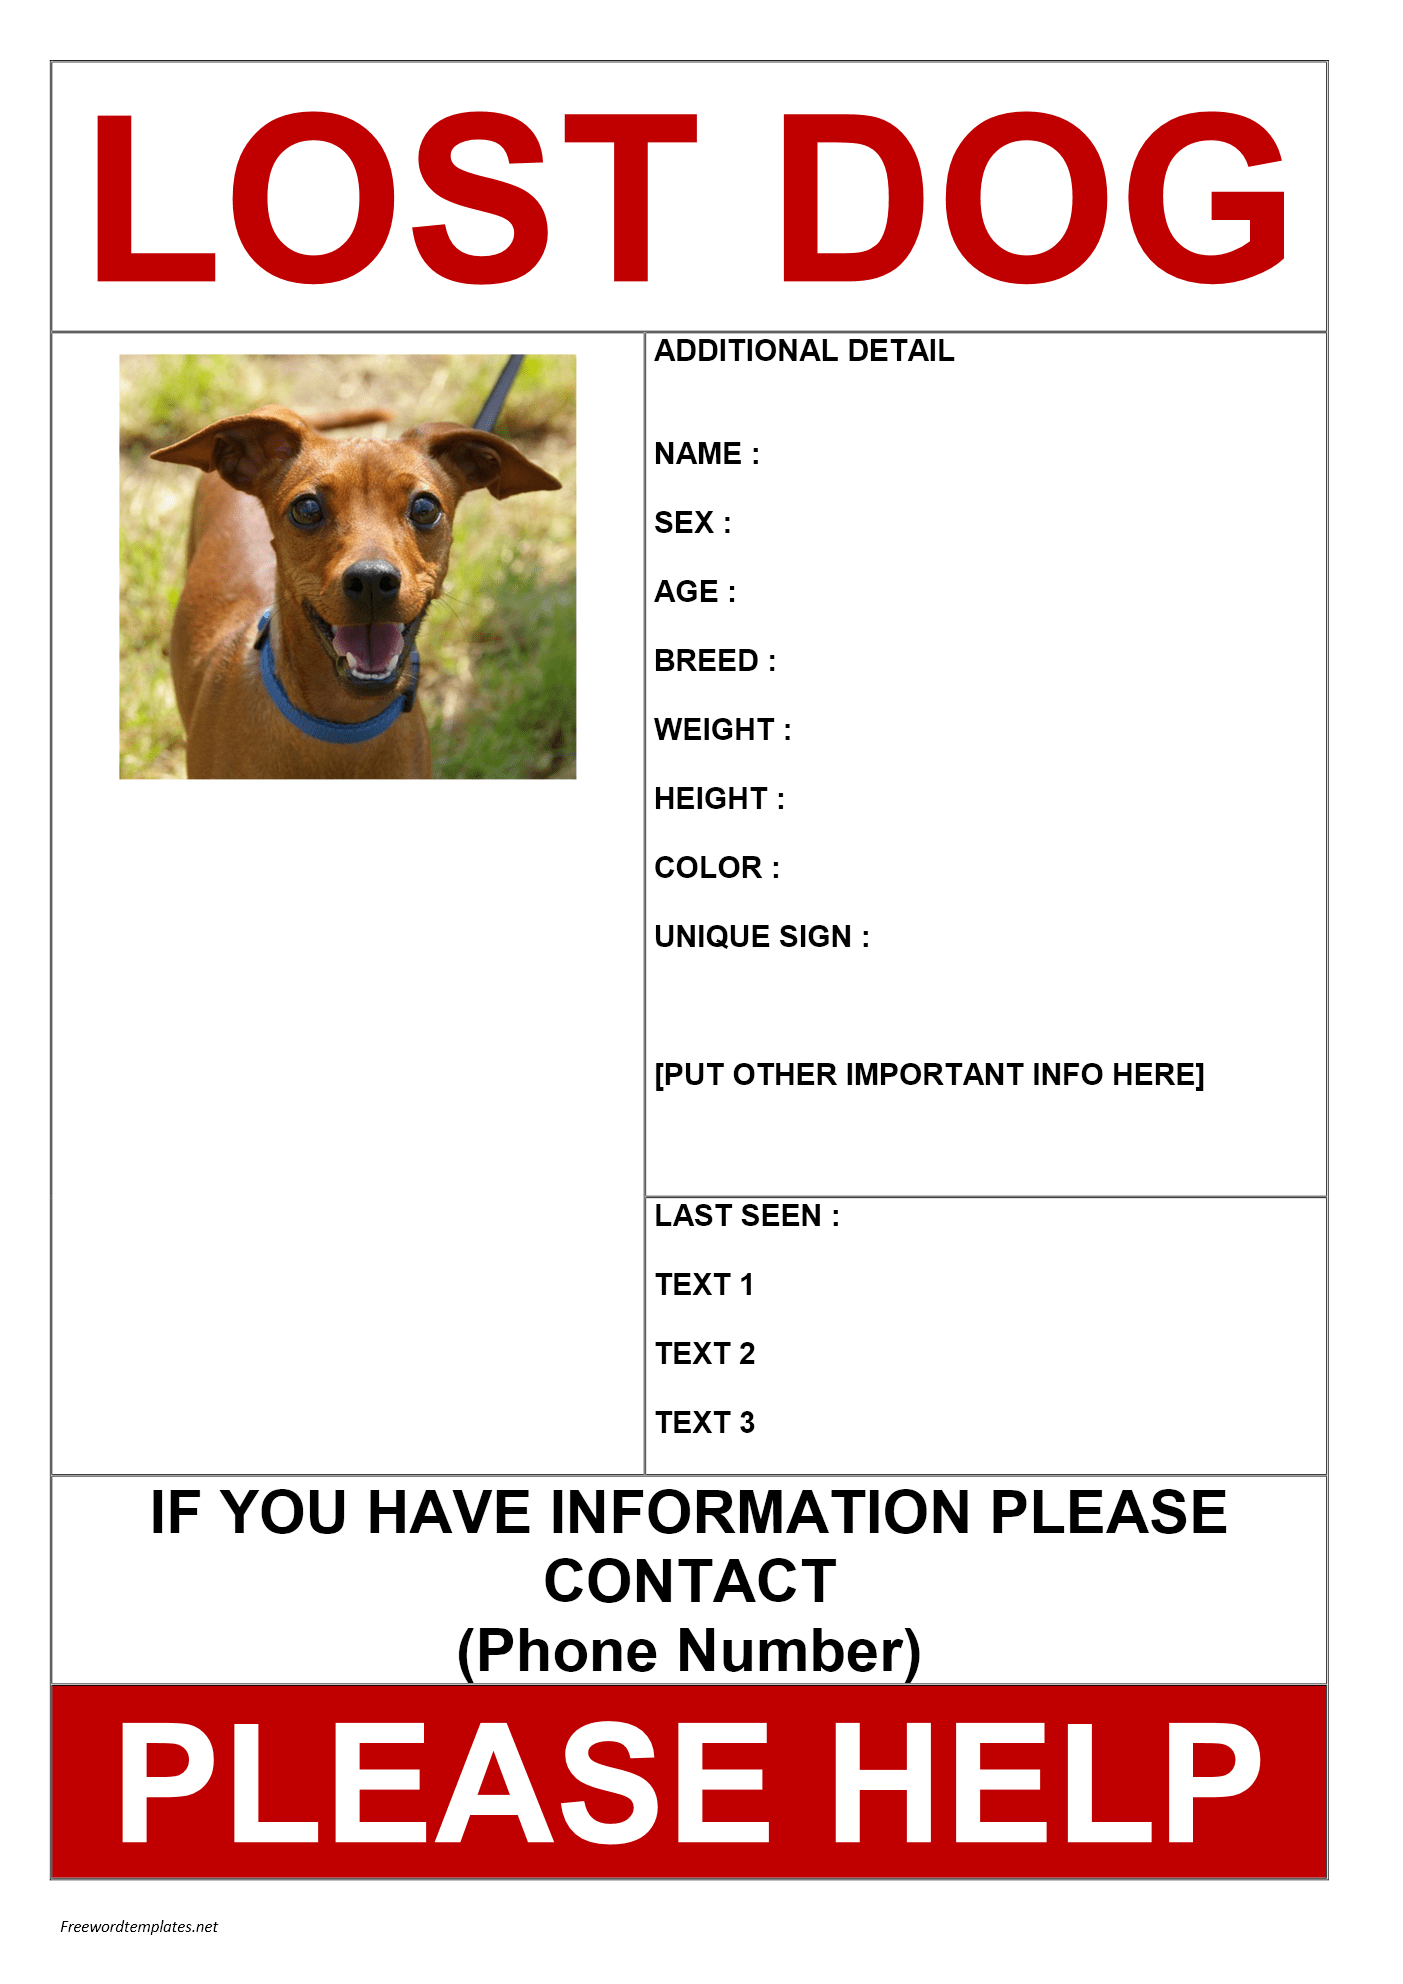 lost pet poster event planning document template status report lost dog poster template ms word petbreeds missing dog poster lost dog poster